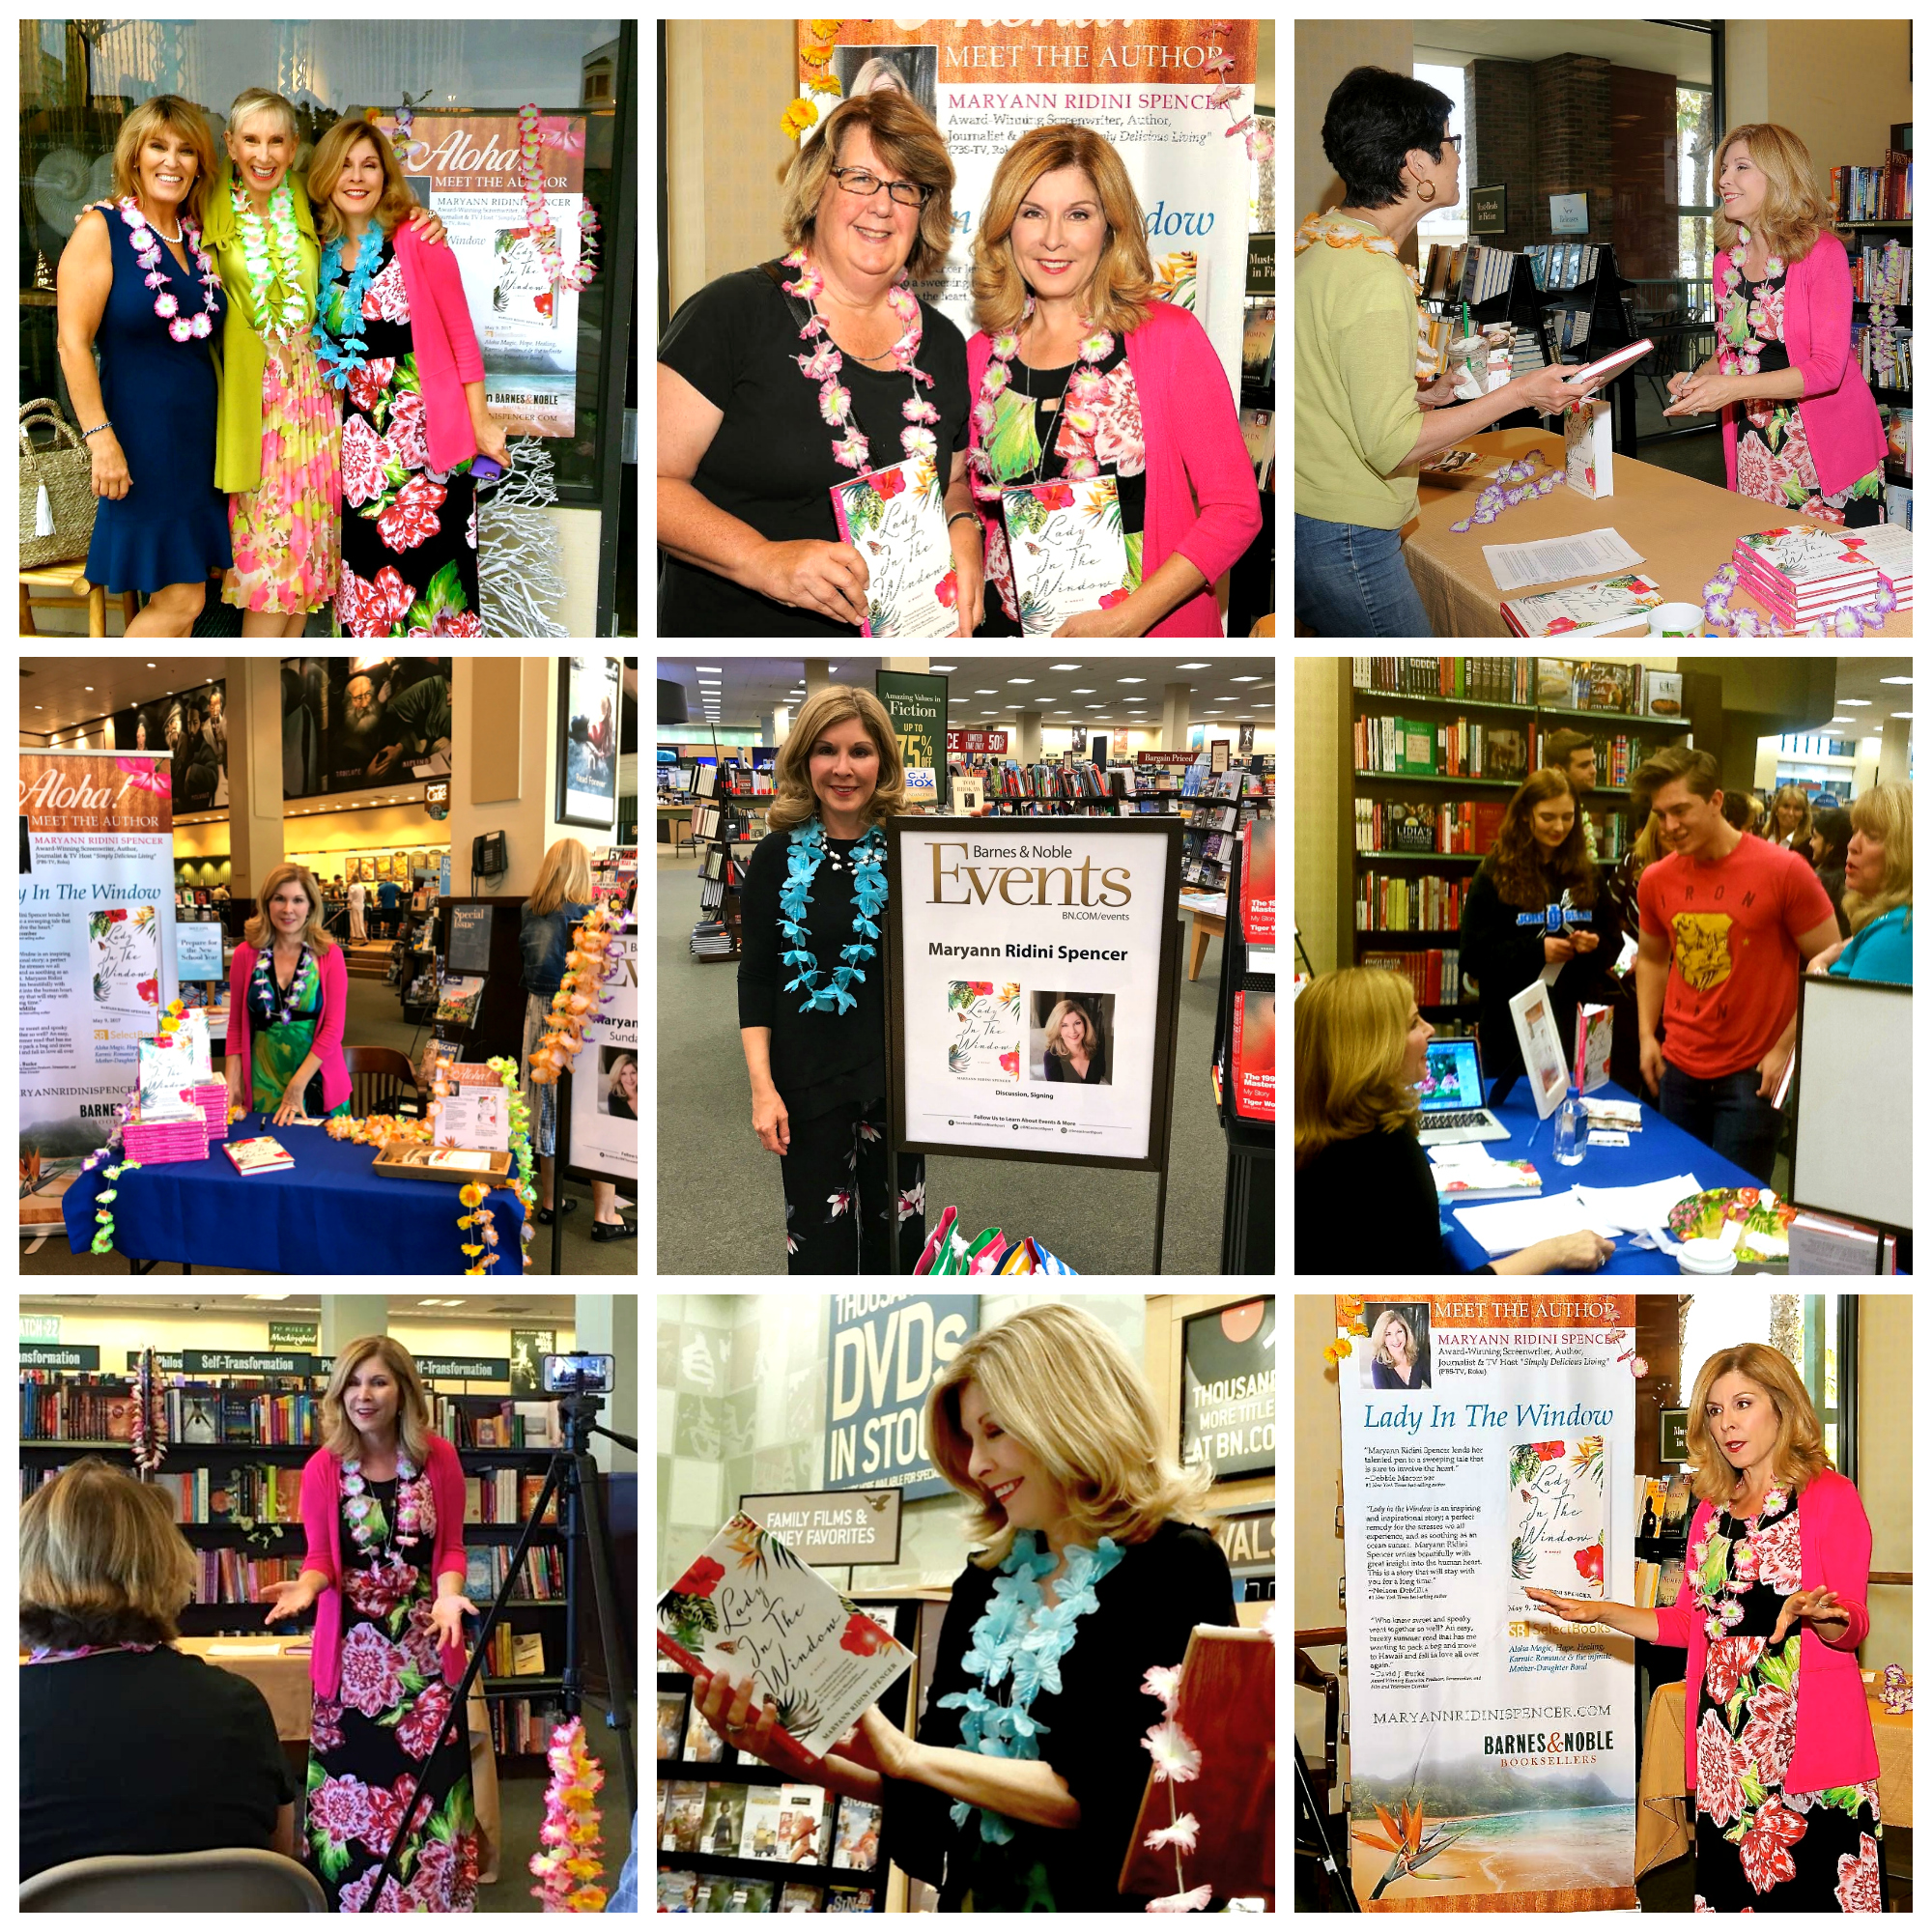 Barnes & Noble Book Signings